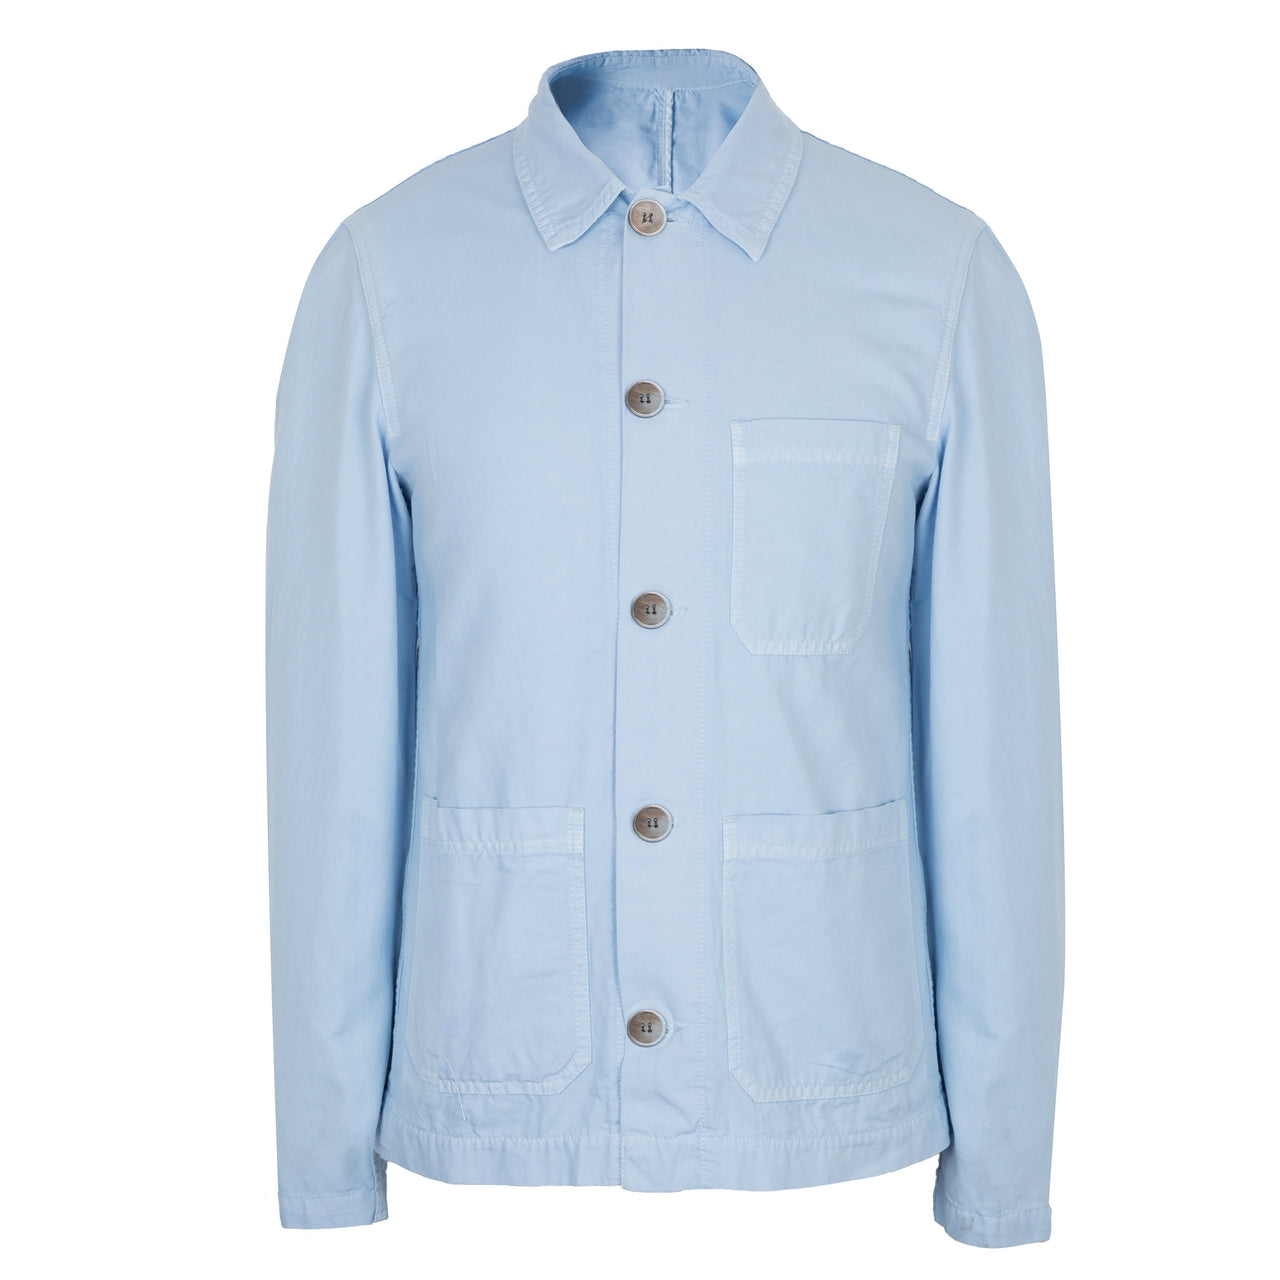 Hardy Amies Light Blue Chambray Shirt Jacket Made In England